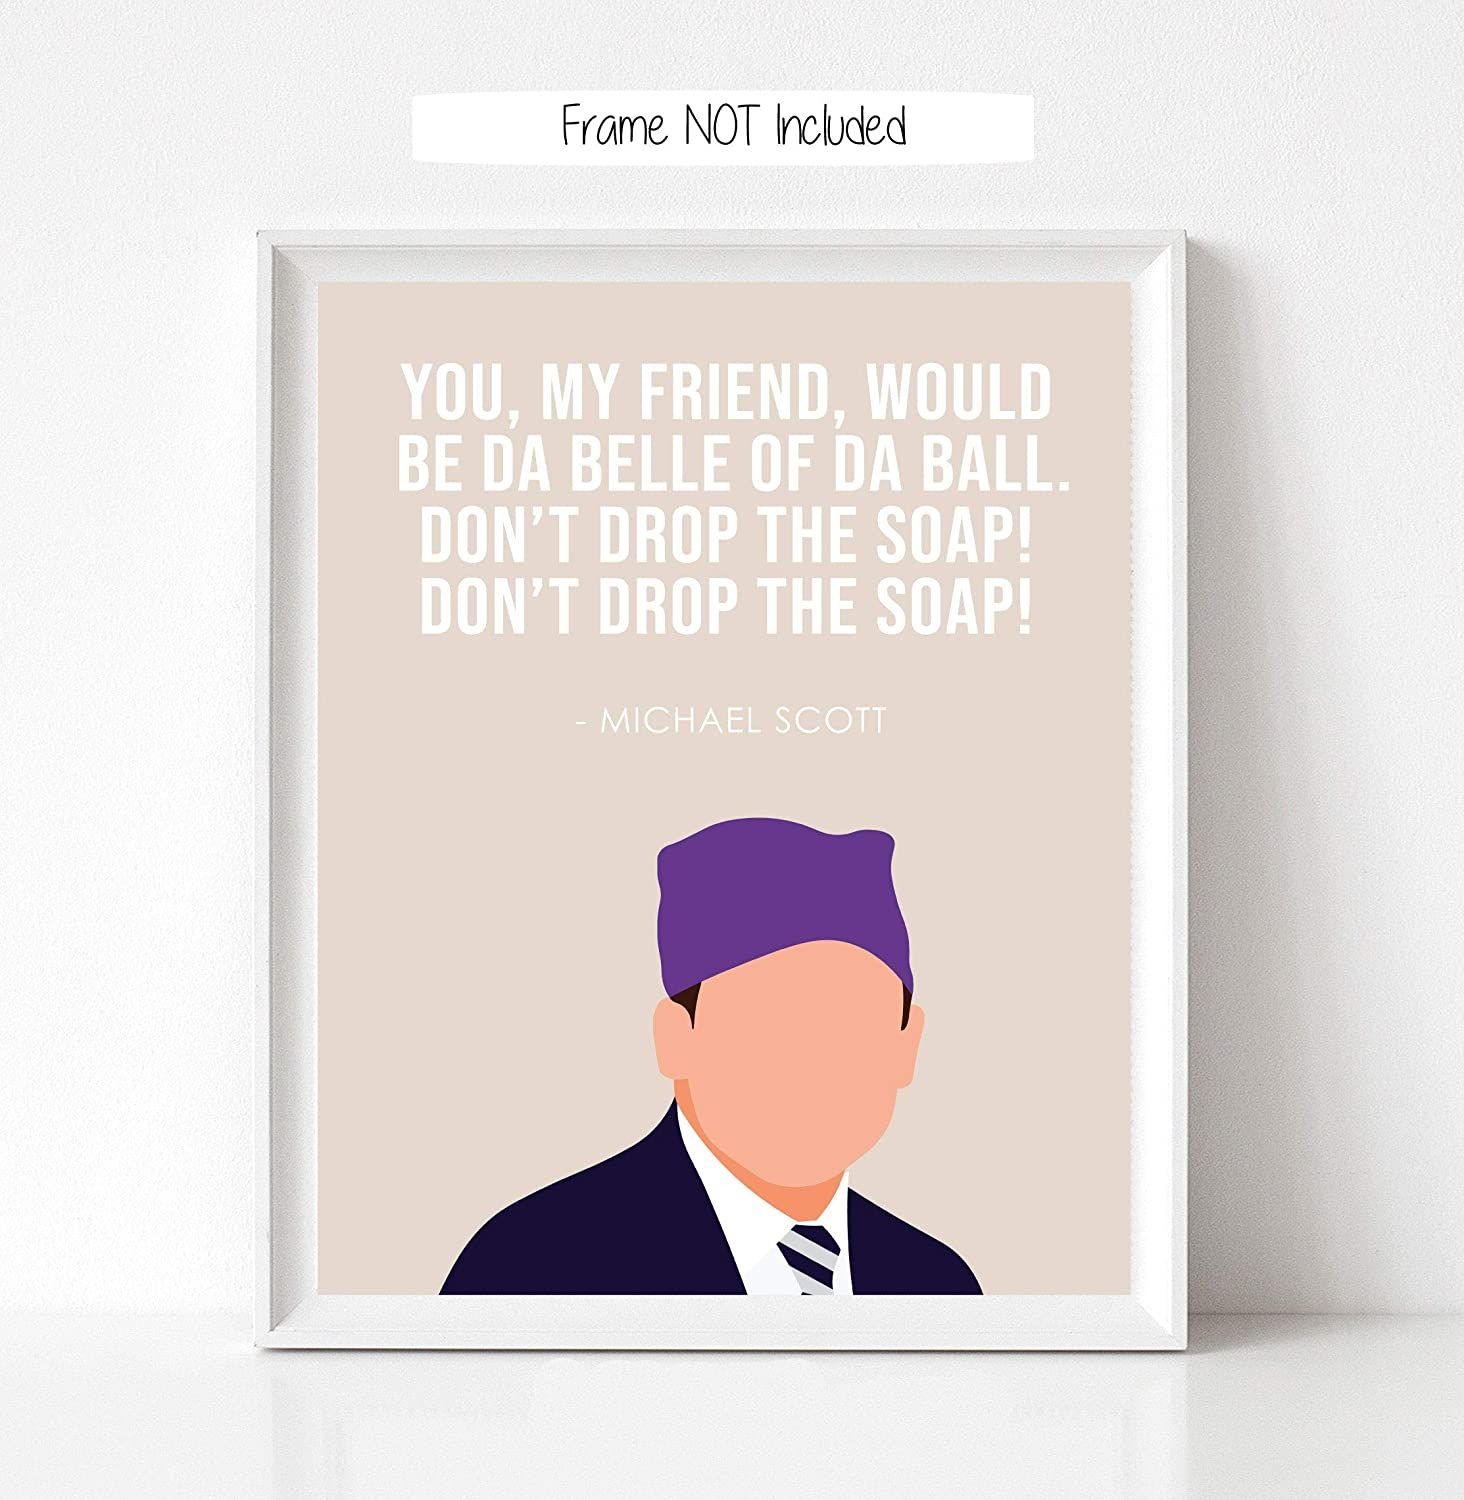 Funny Bathroom Poster The Office Gifts TV Show 11 x14 UNFRAMED Wall Print My Friend Great Gift For Fans Of The Office TV Show Michael Scott Poster You Would Be Da Belle of Da Ball